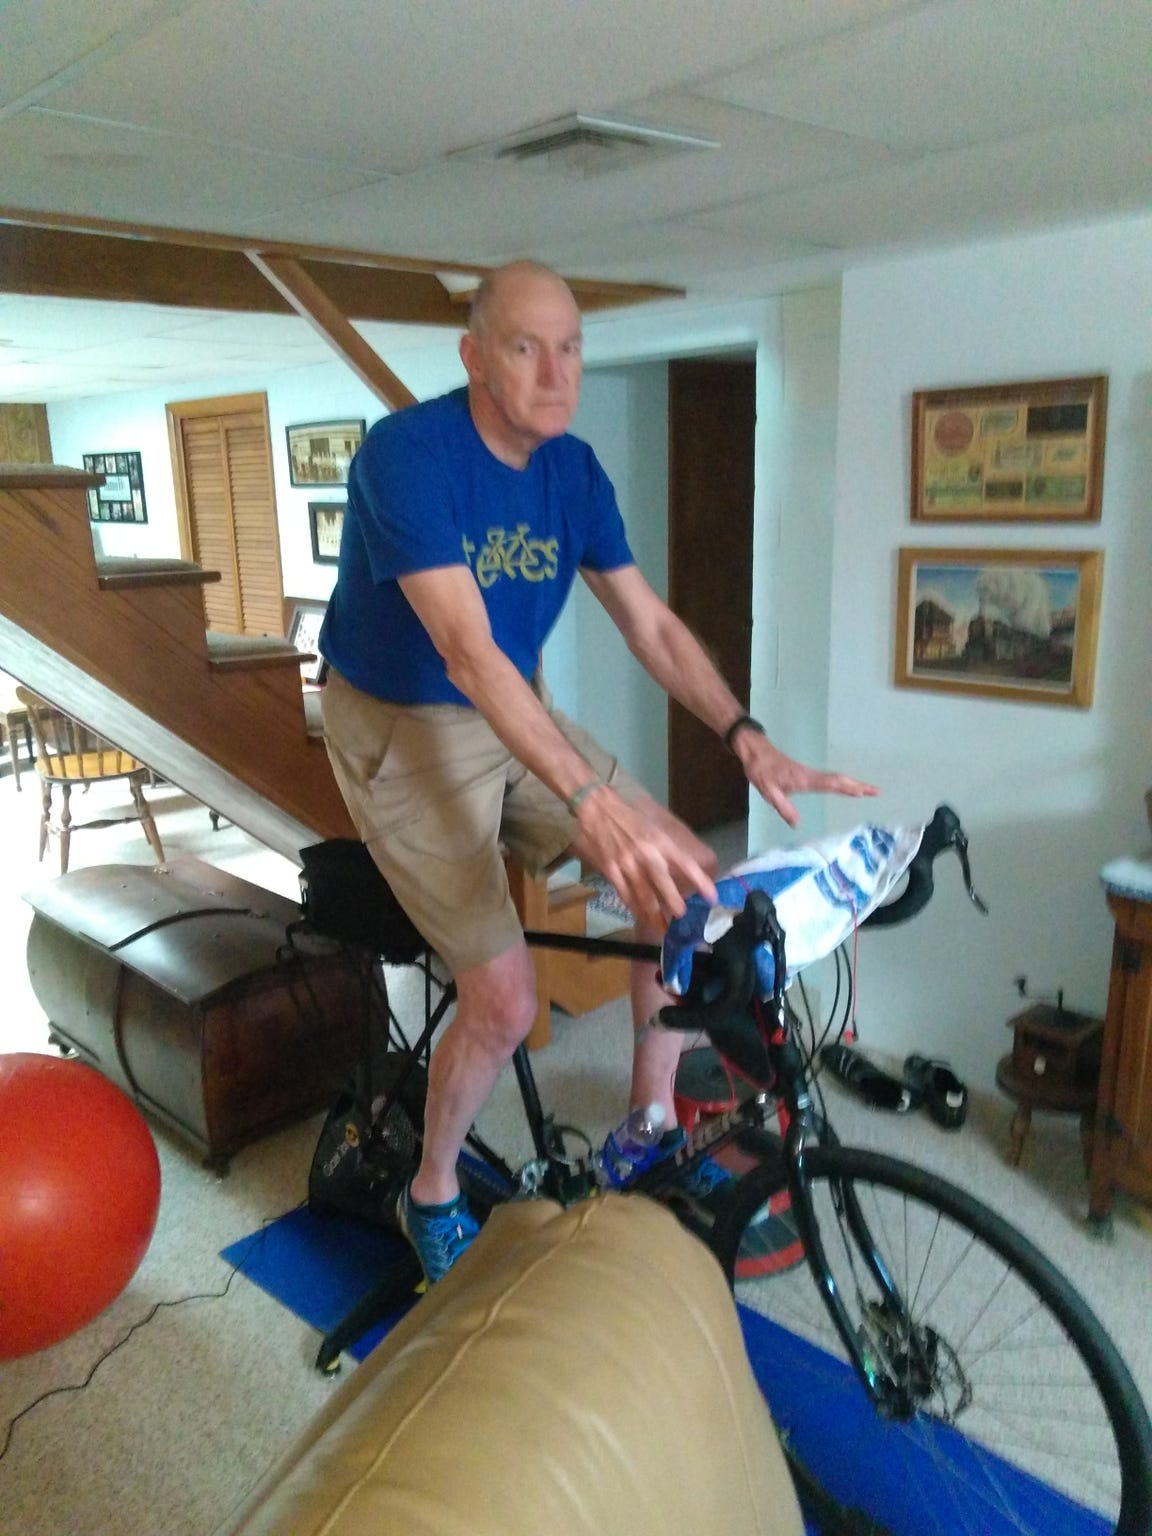 Tom Bay rides a stationary bike in his home in an attempt